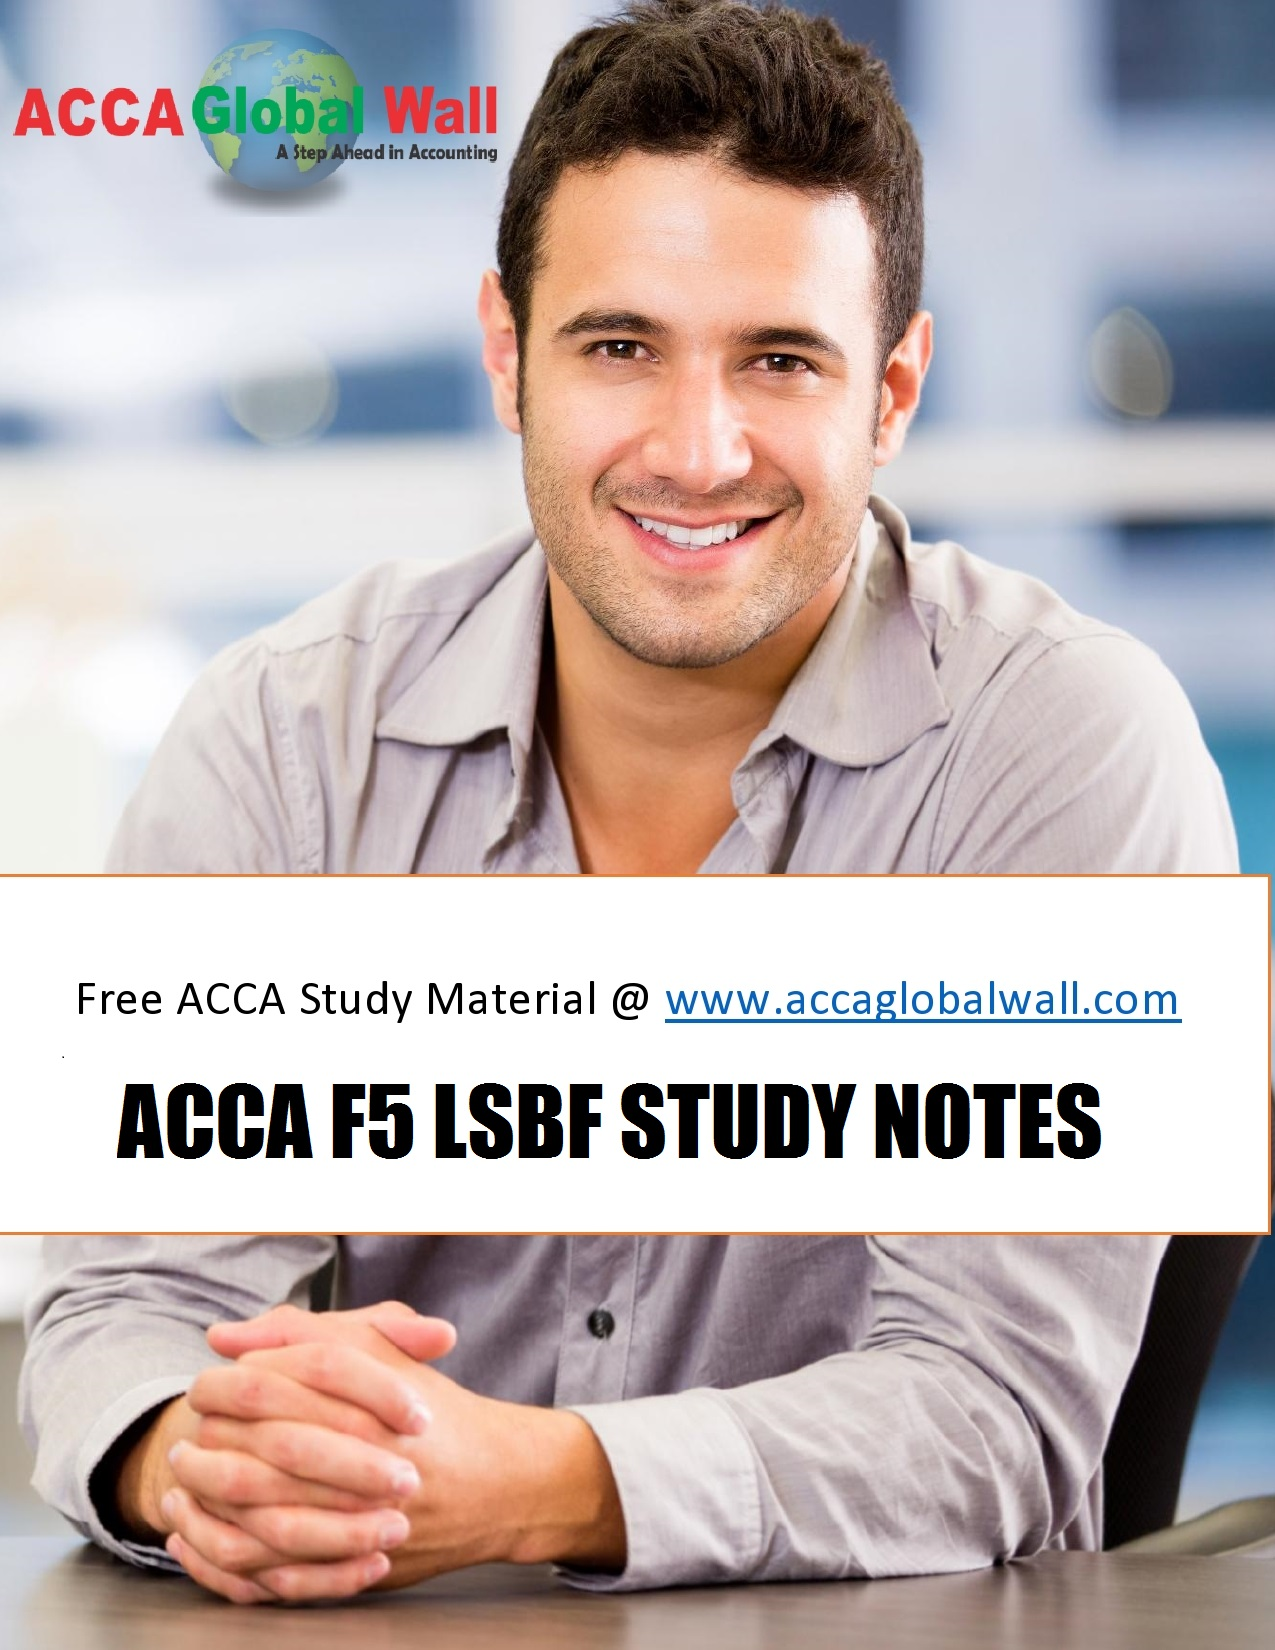 ACCA F5 LSBF STUDY MATERIAL ACCAGLOBALWALL.COM